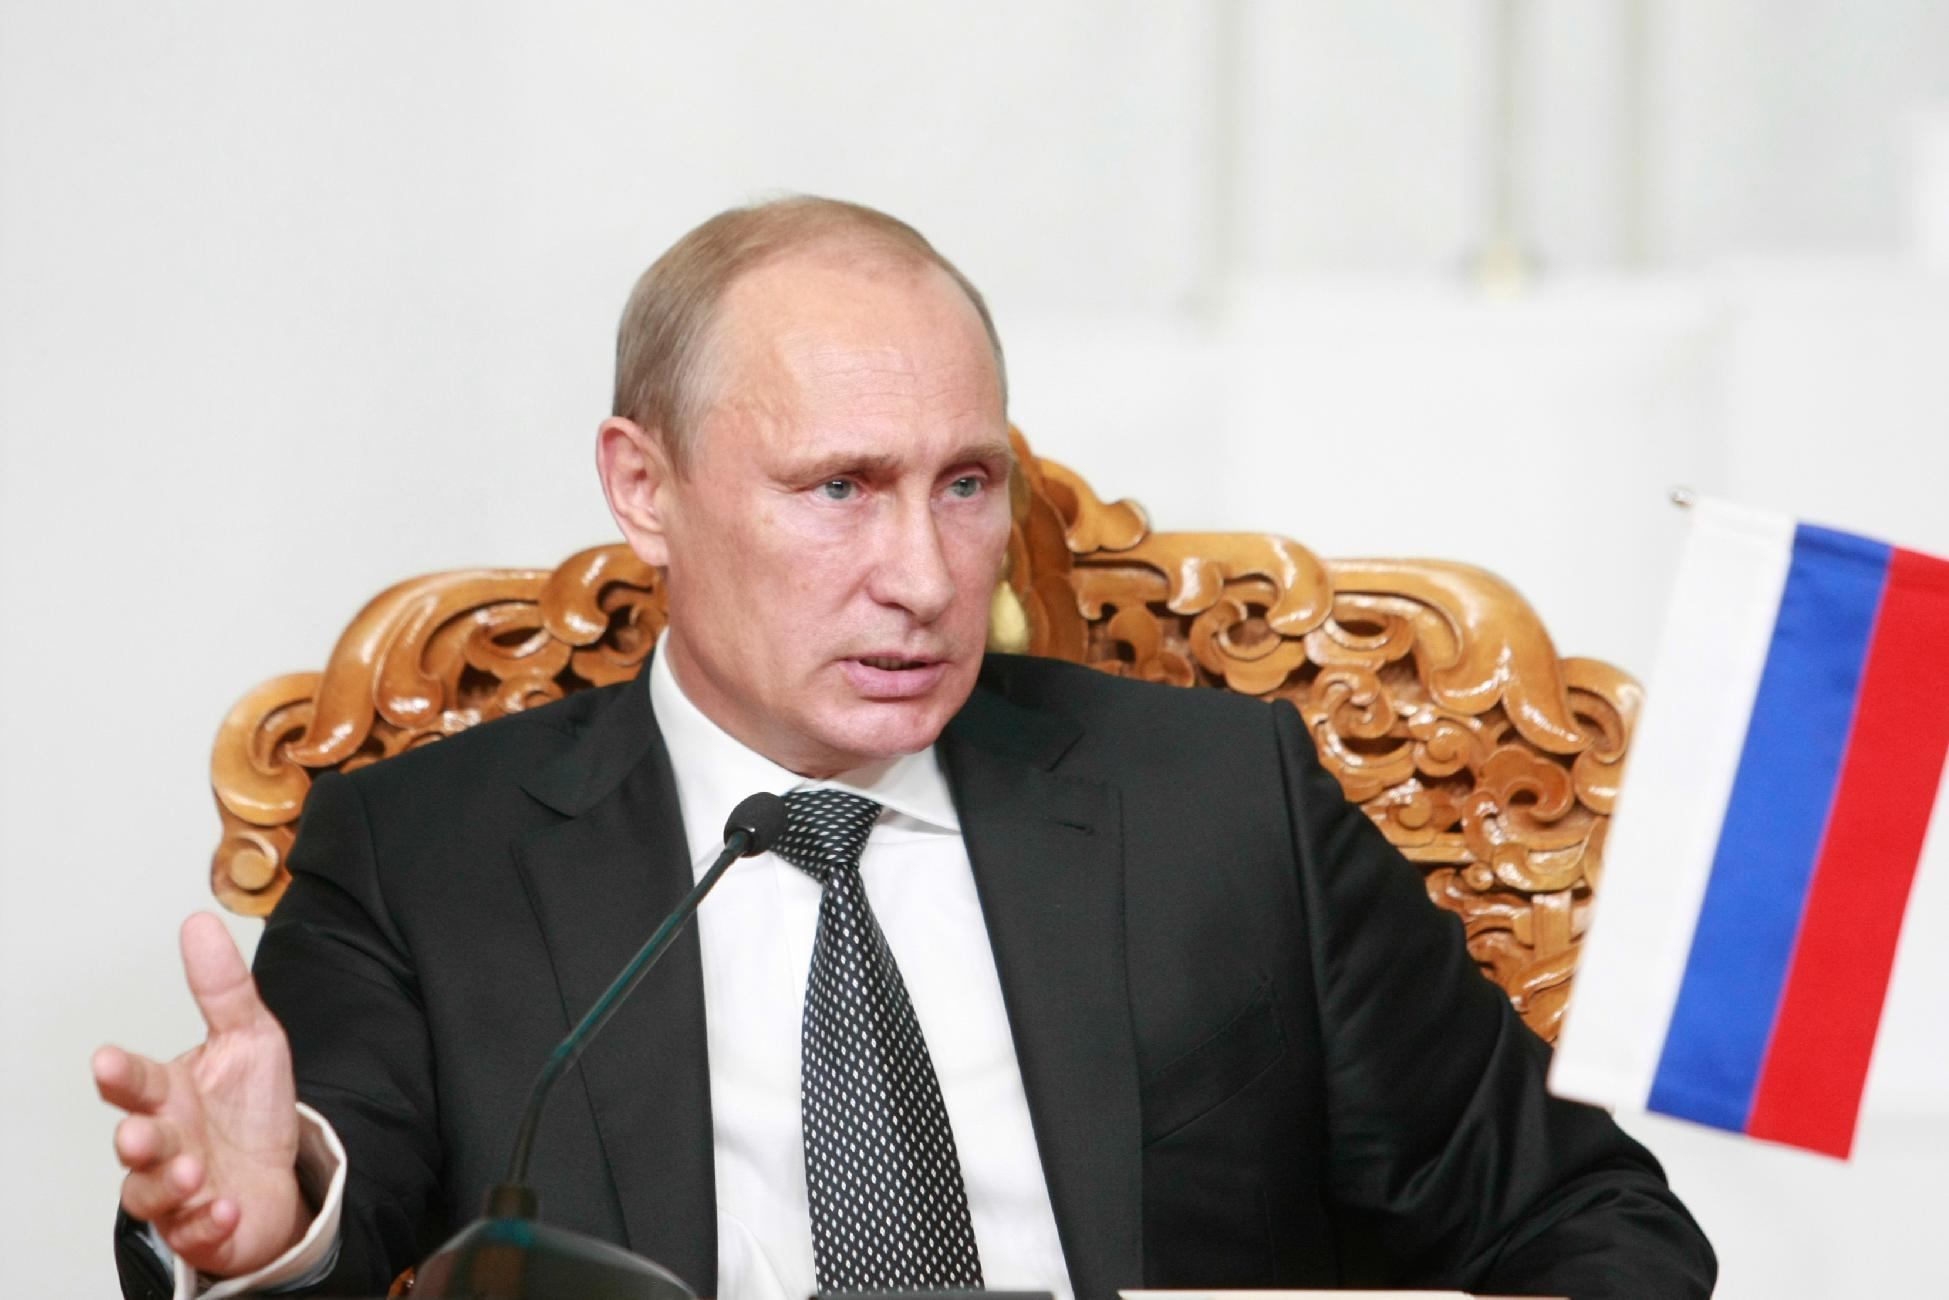 Russian President Vladimir Putin gestures as he talks on September 3, 2014